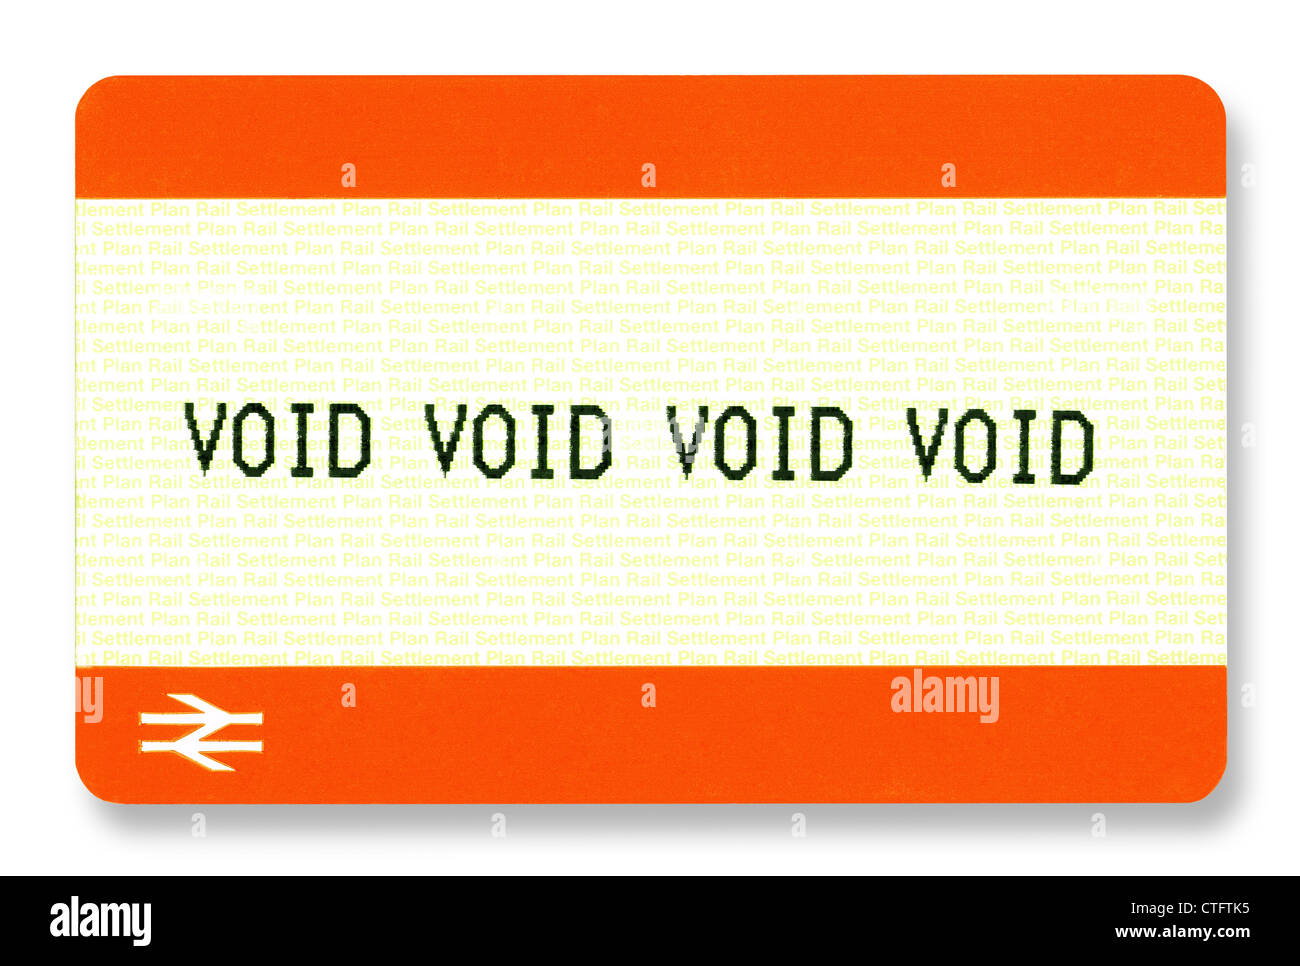 UK Rail tickets with 'VOID' printed on them. Genuinely obtained from a ticket-machine. - Stock Image